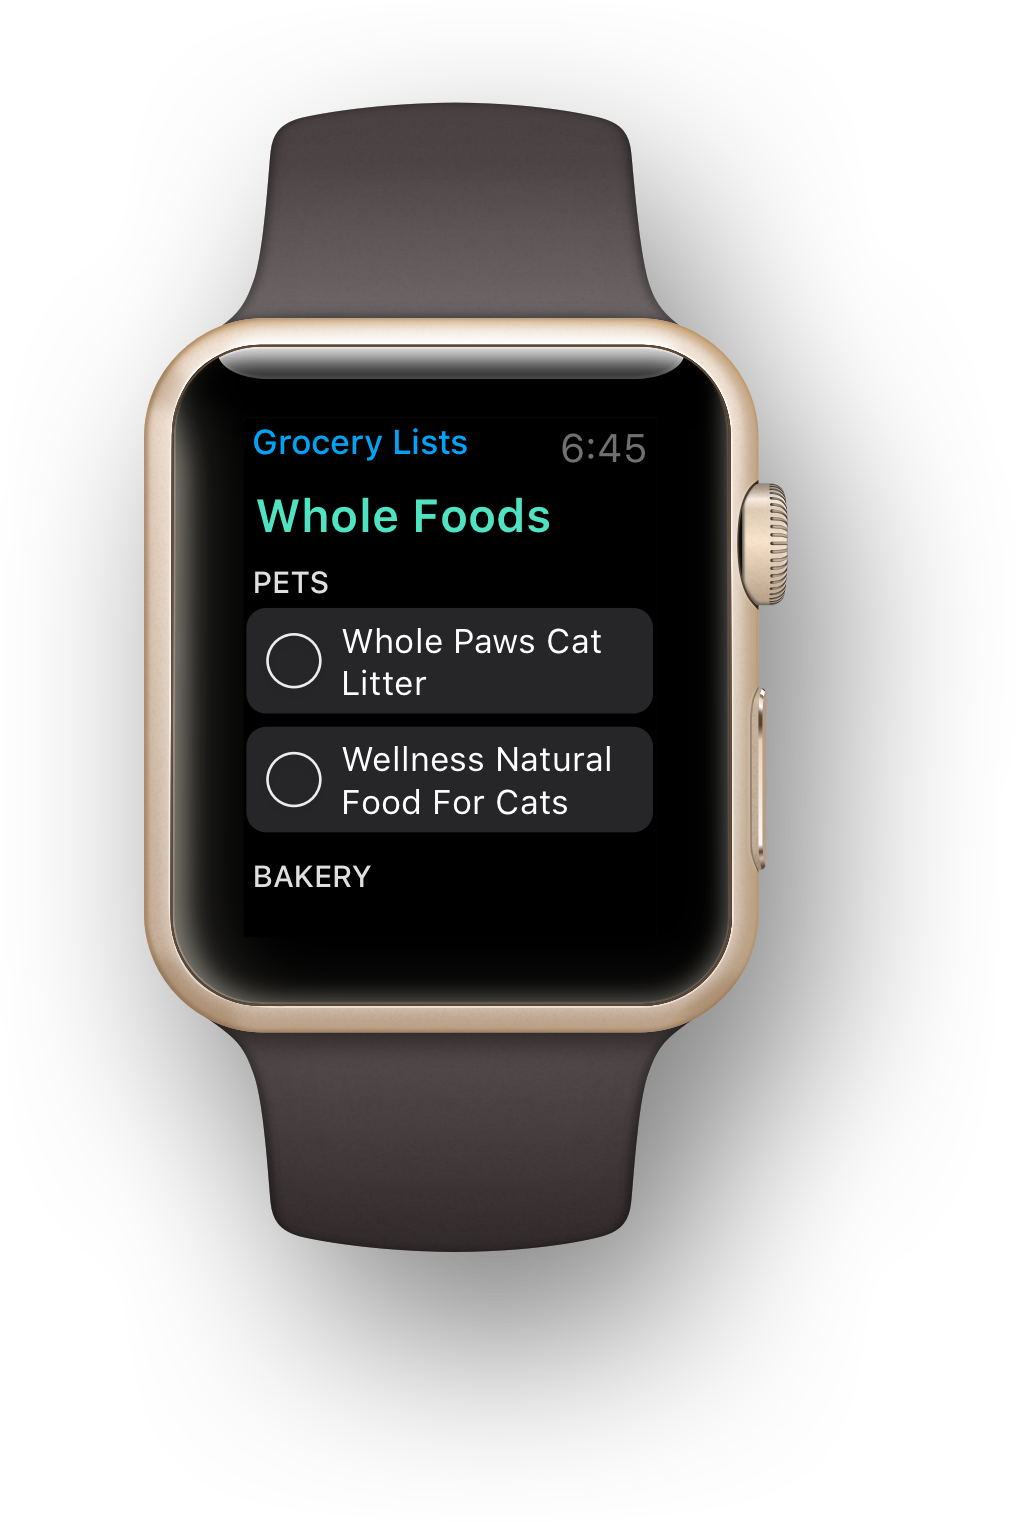 the best grocery list app for apple watch any do